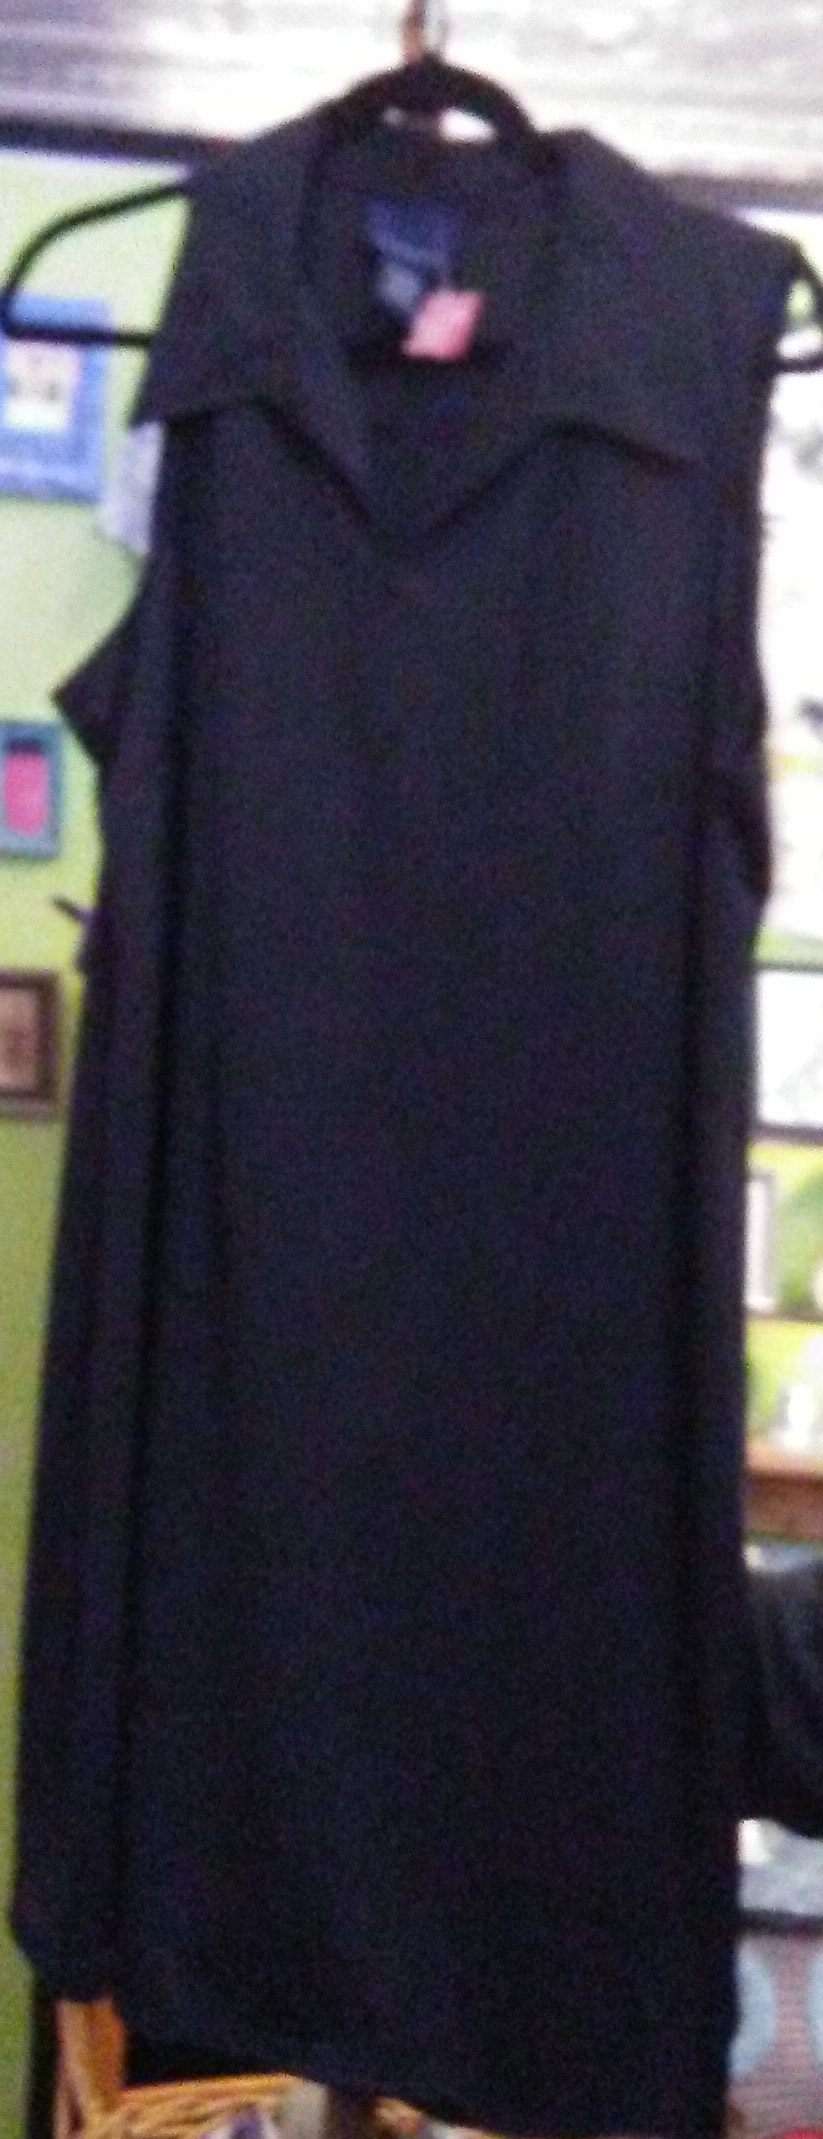 Superstar Universe, LLC Vintage Venezia 18/20 black sleeveless work/party dress WITH FREE SHIPPING